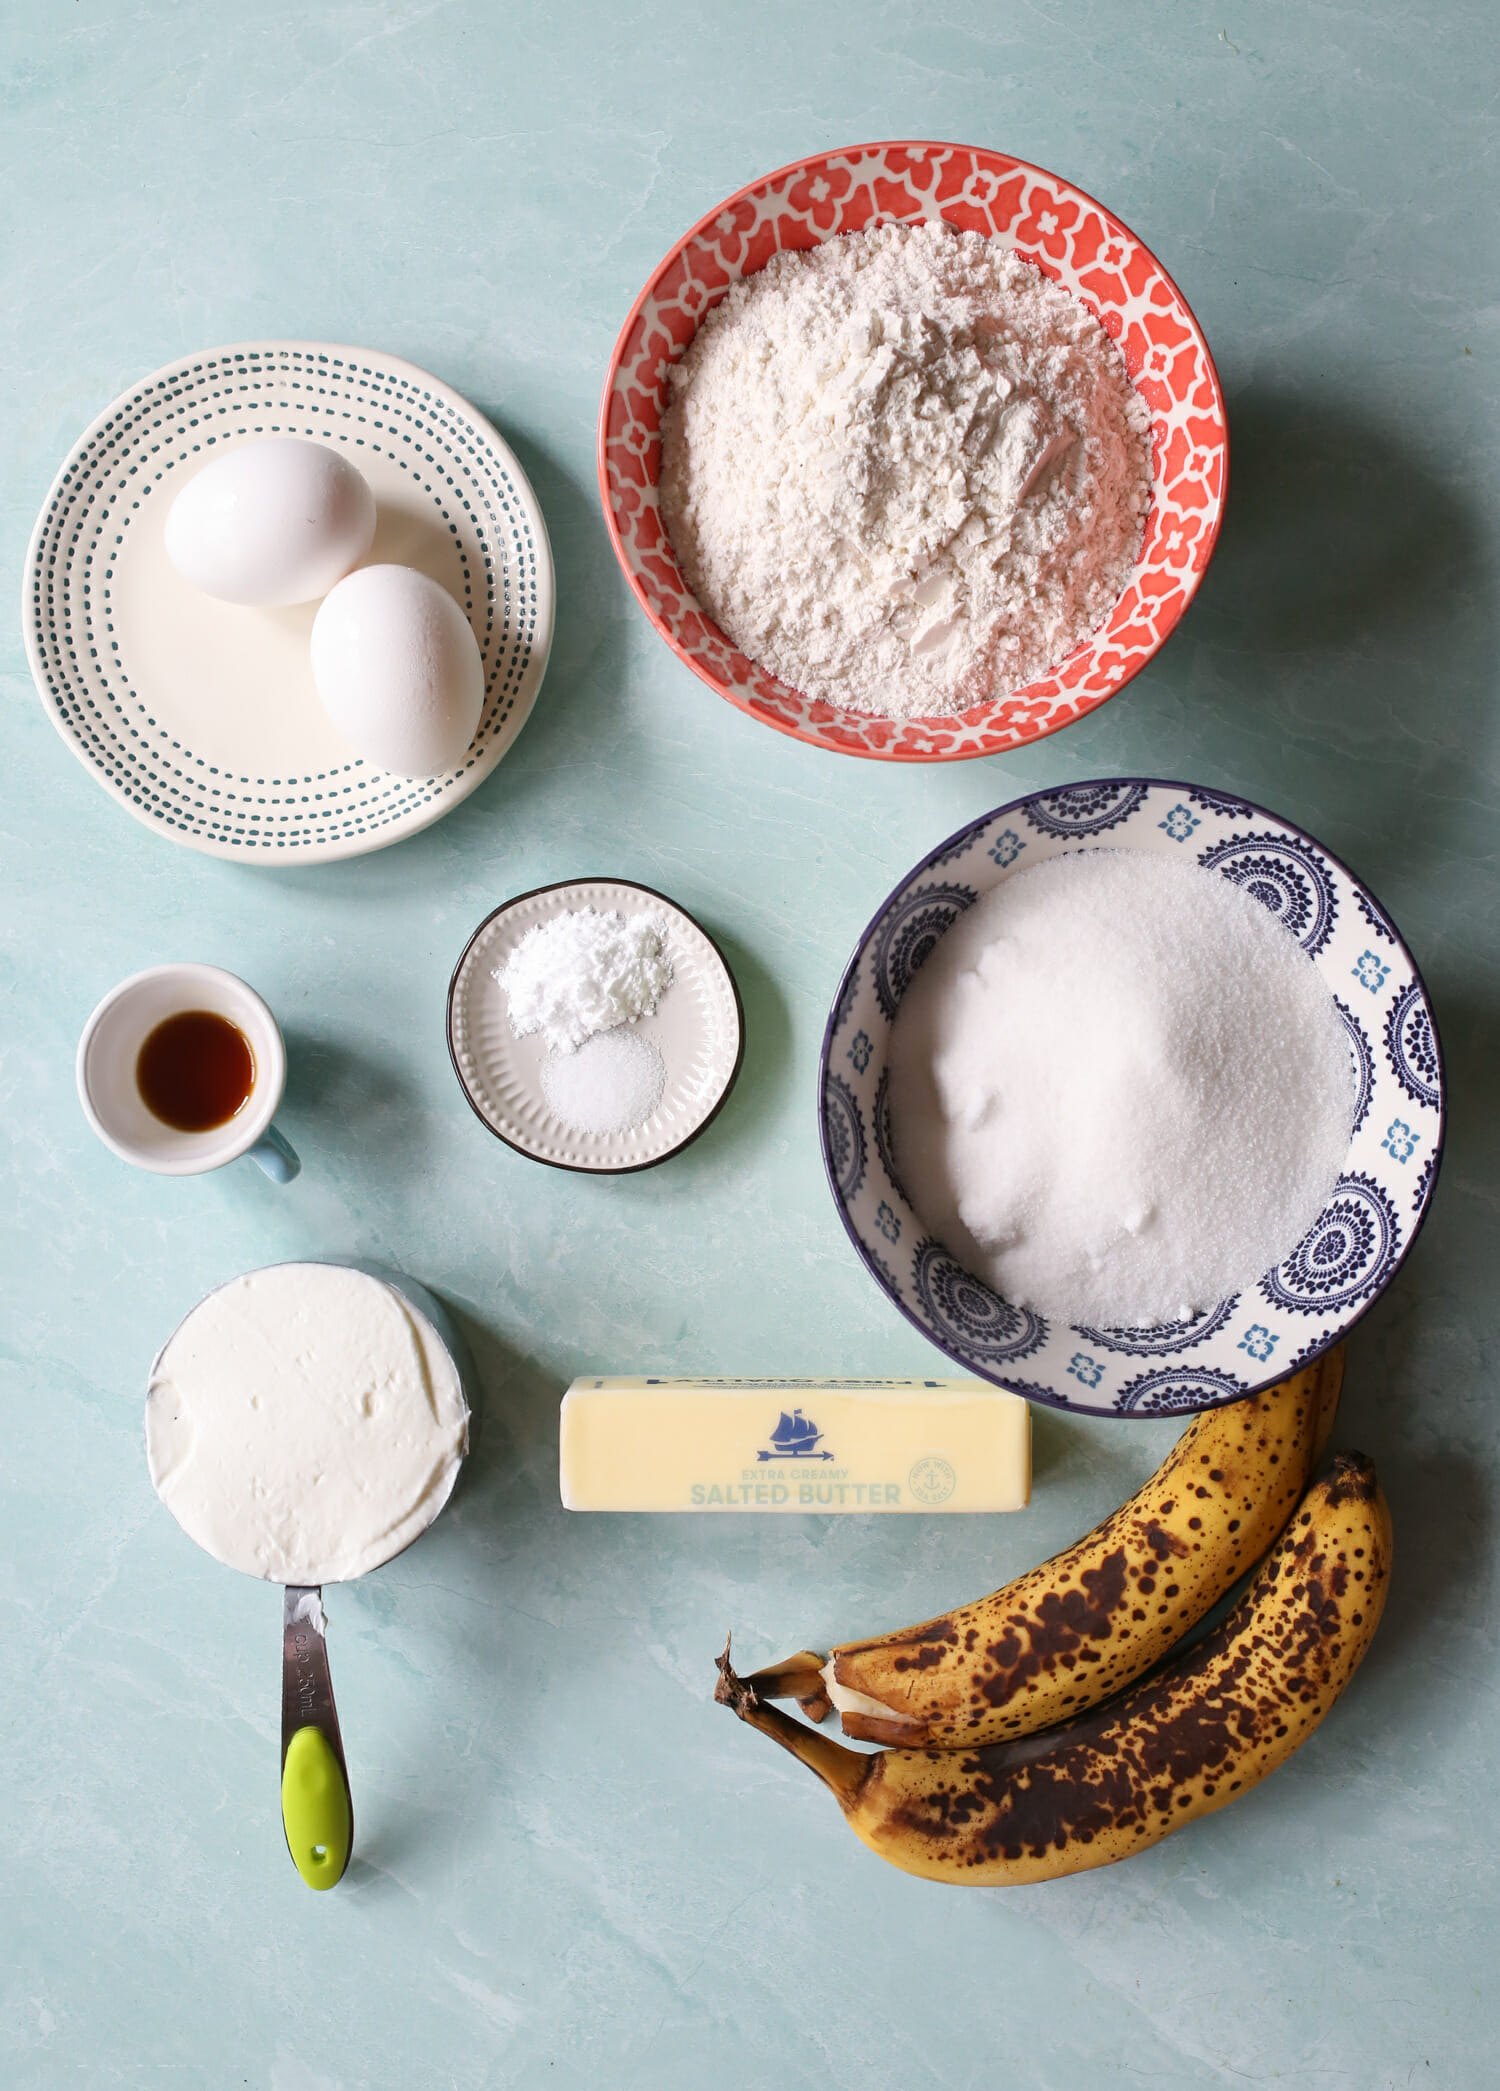 ingredients for banana bars with cream cheese icing from our best bites